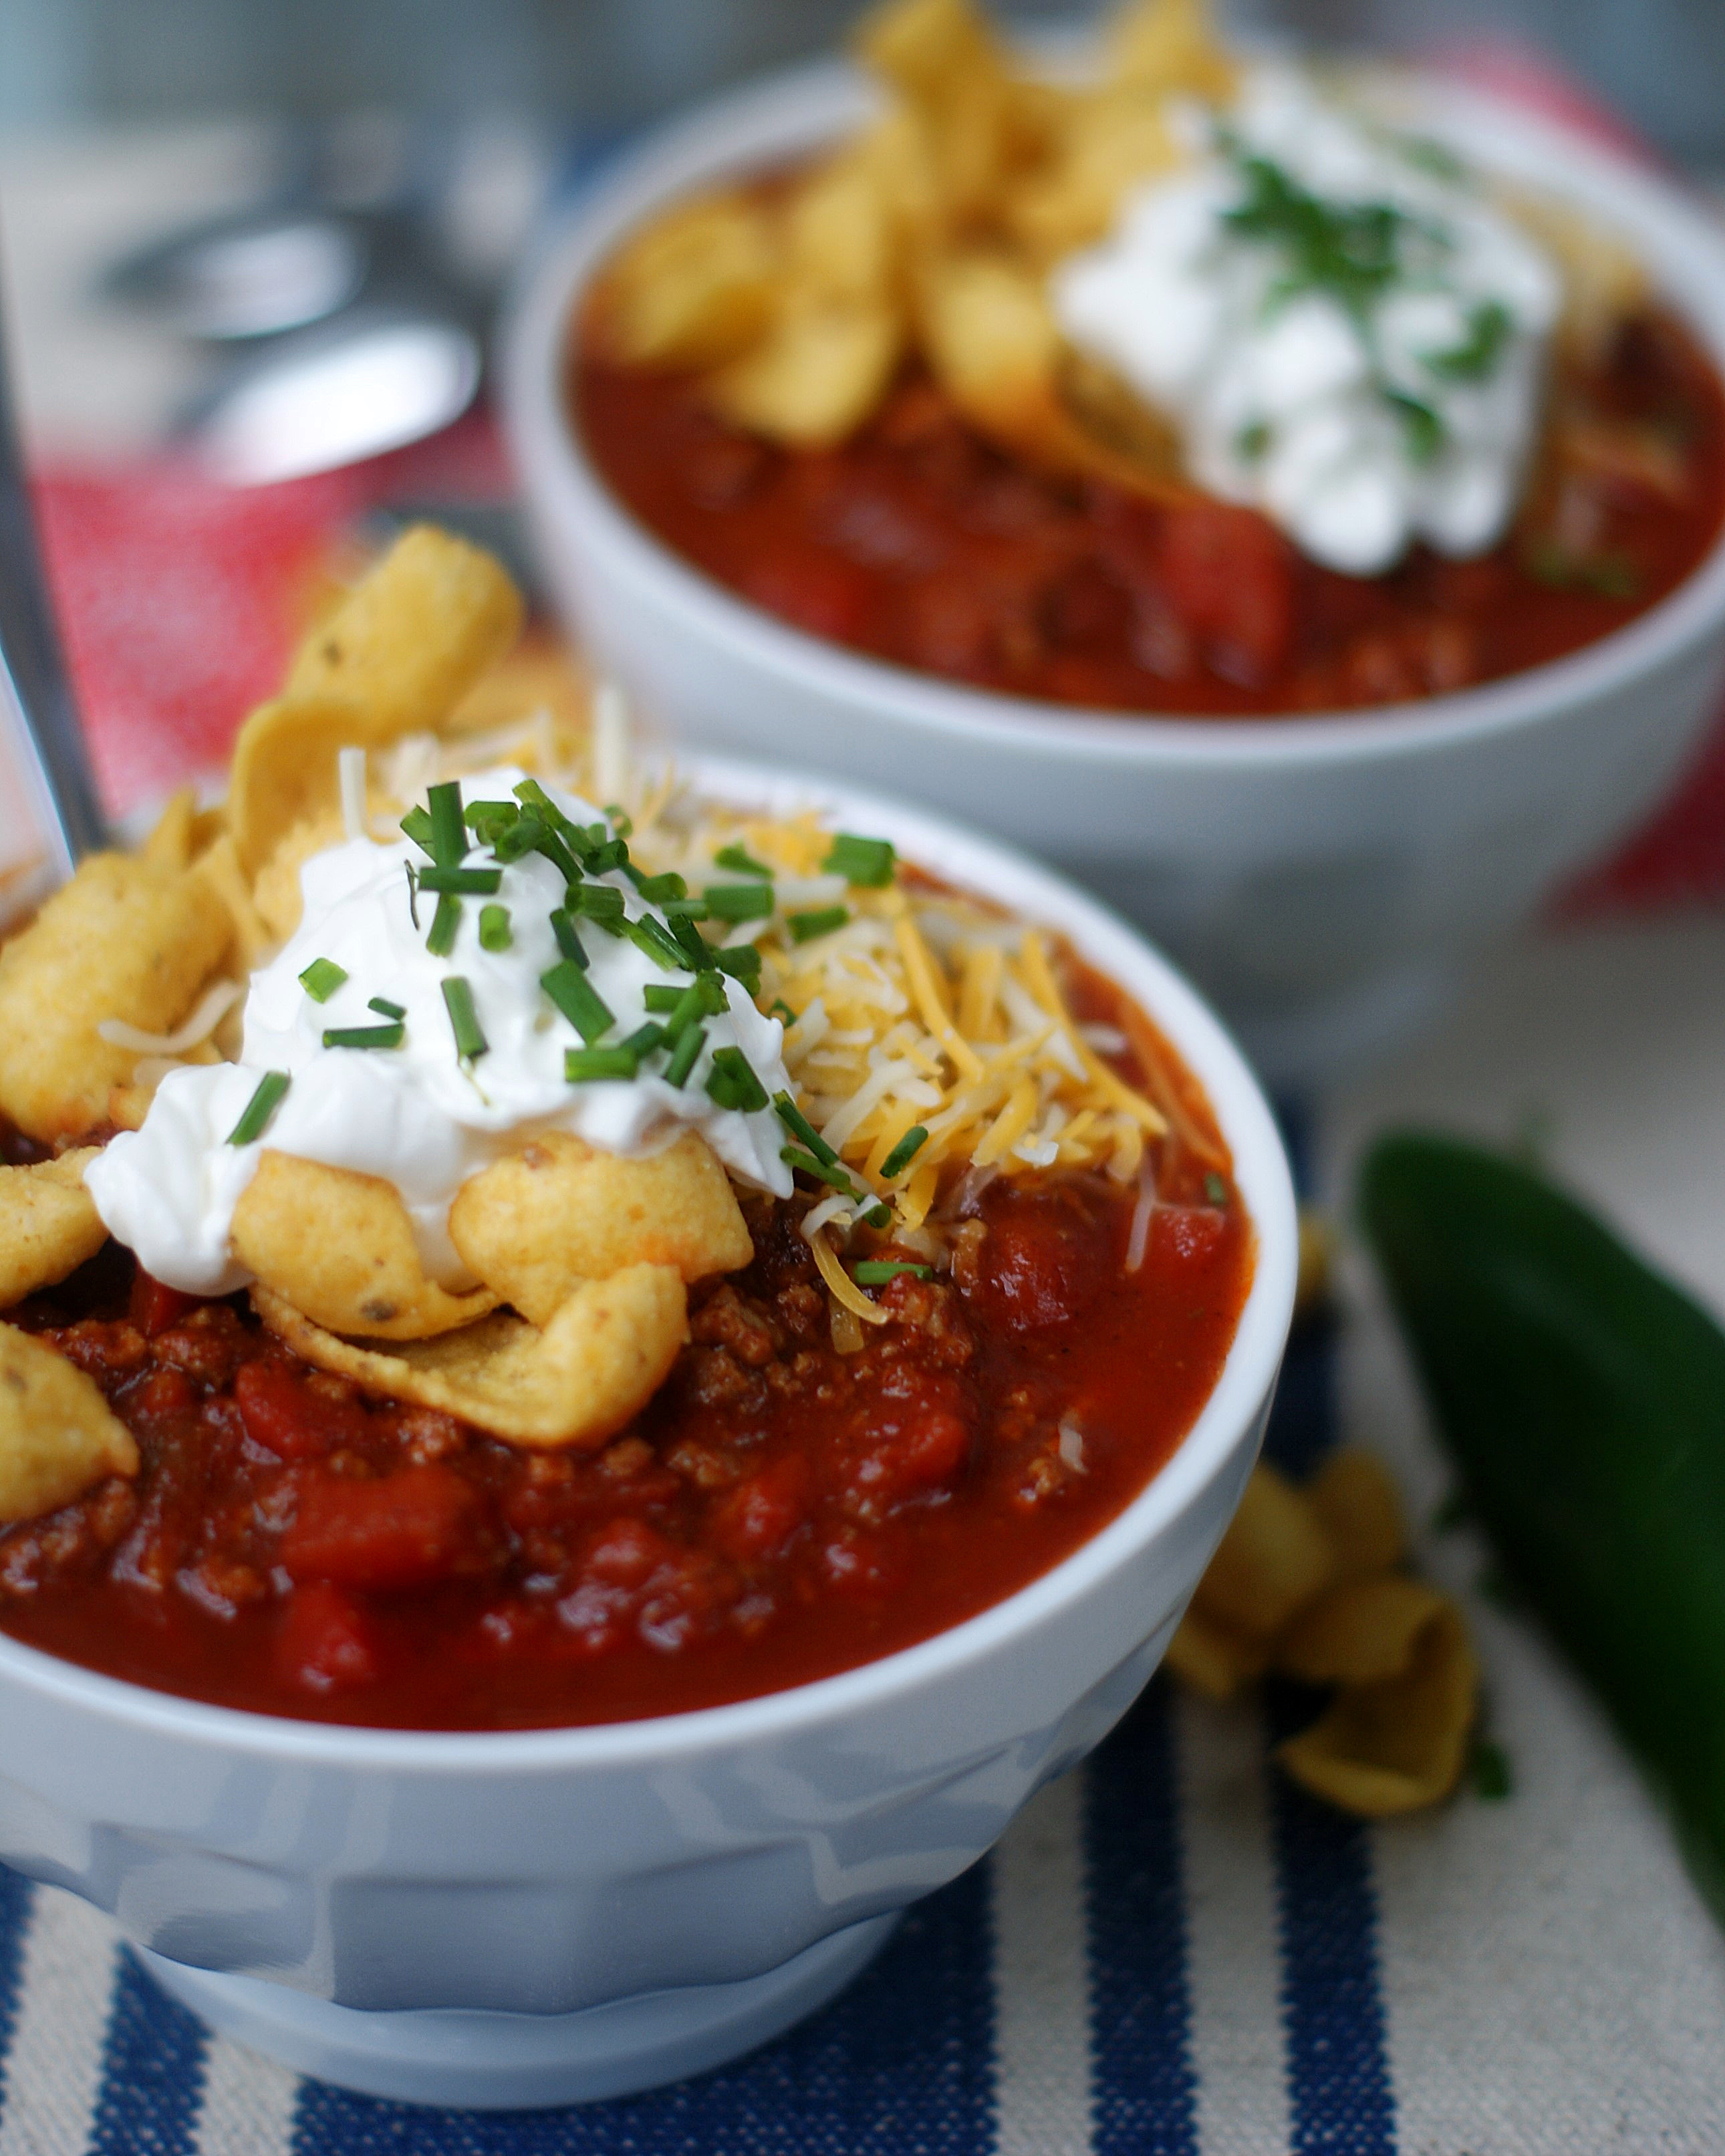 2 bowls of Texas Chili with corn chips, sour cream and cheese.